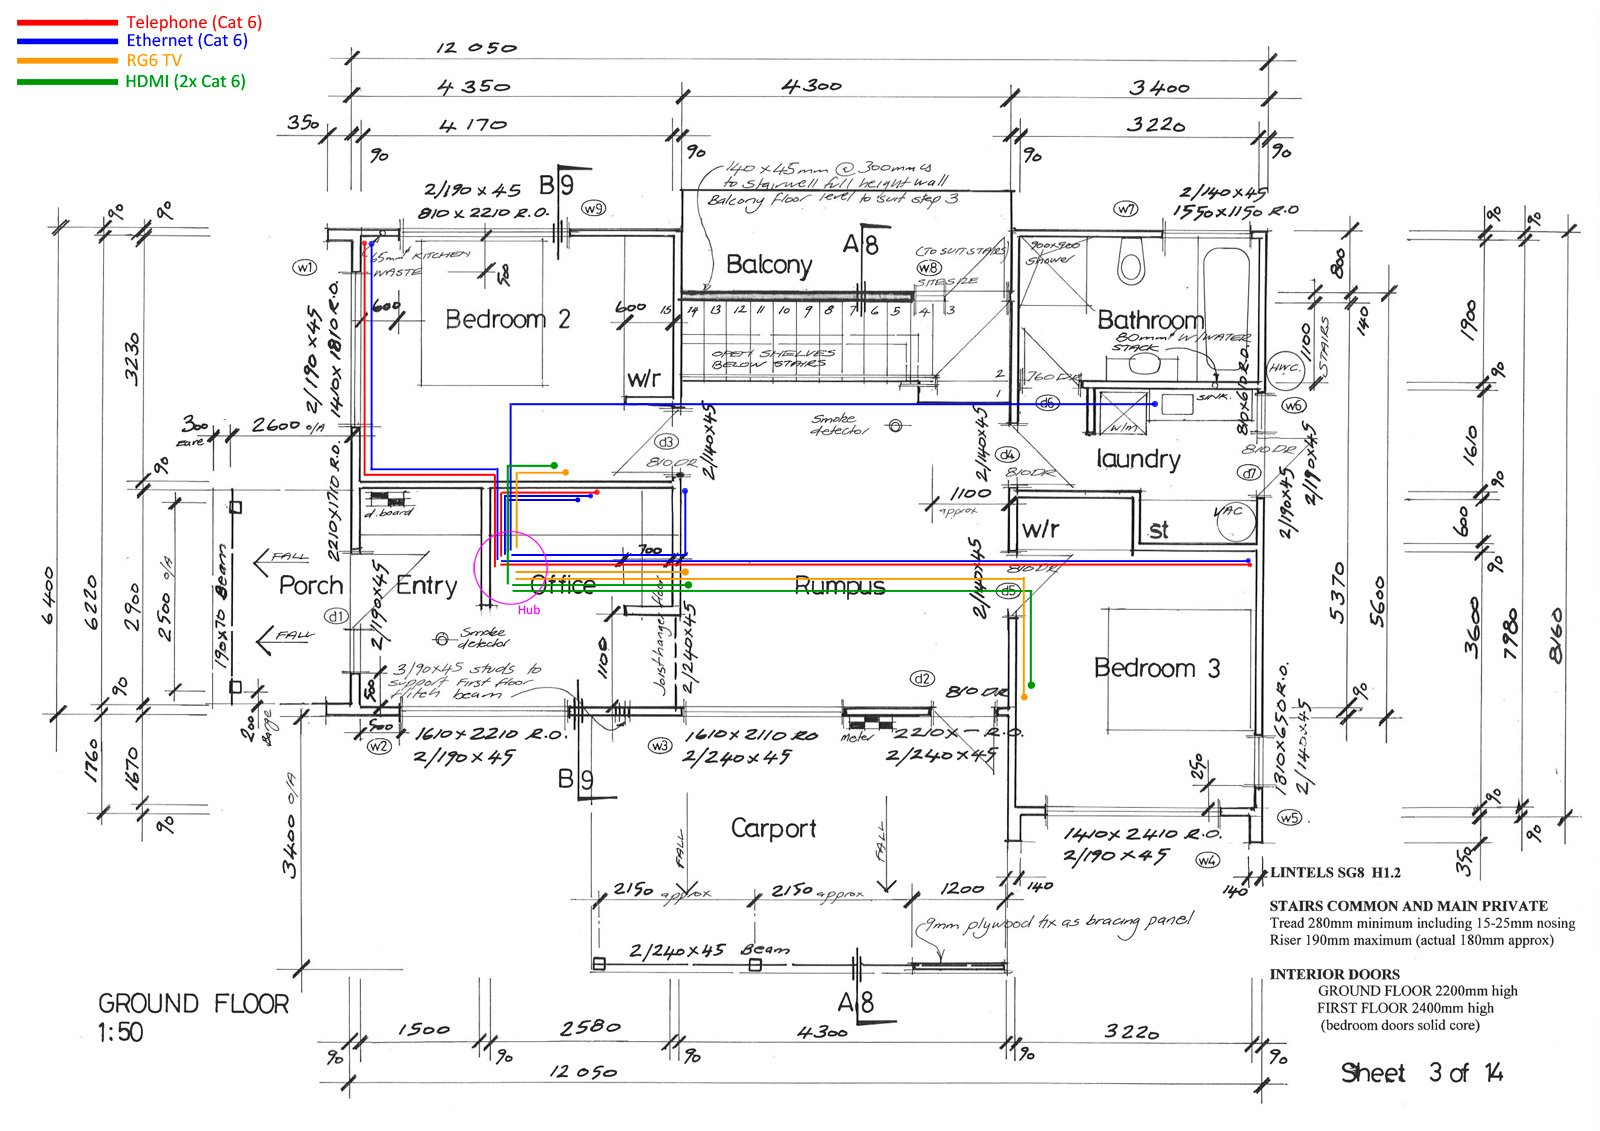 hight resolution of wiring a house with hdmi wiring diagram go wiring a house for hdmi wiring diagram week